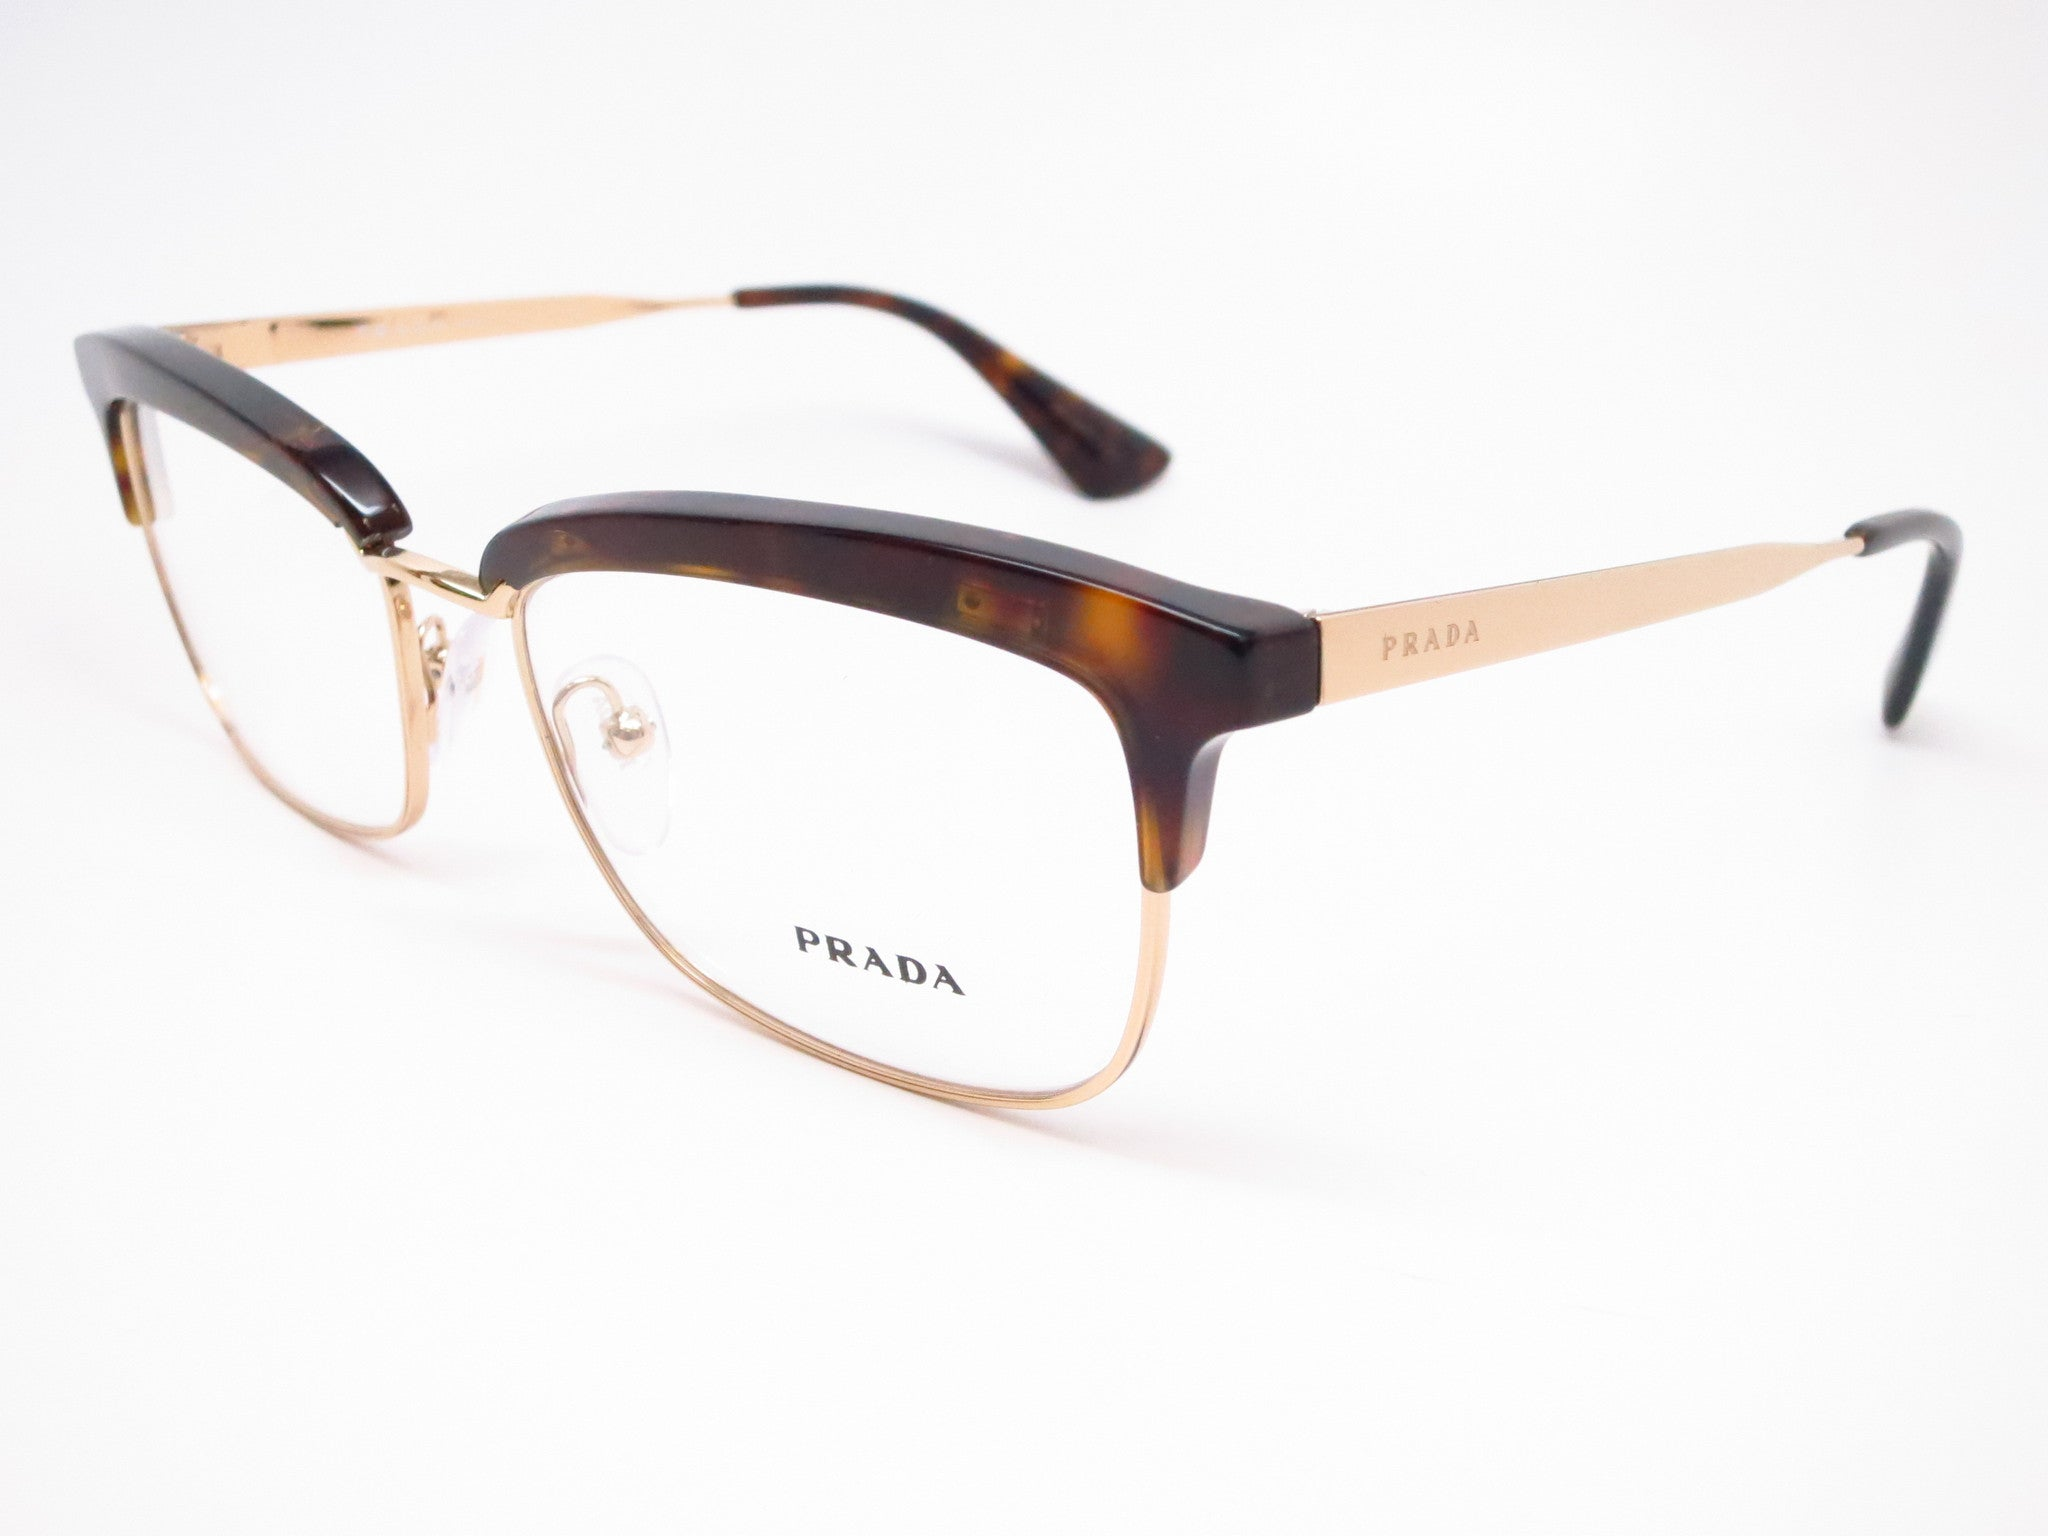 0925d9d620d NEW PRADA OPTICAL EYEGLASSES VPR 22P MA5-101 54-16-140 W